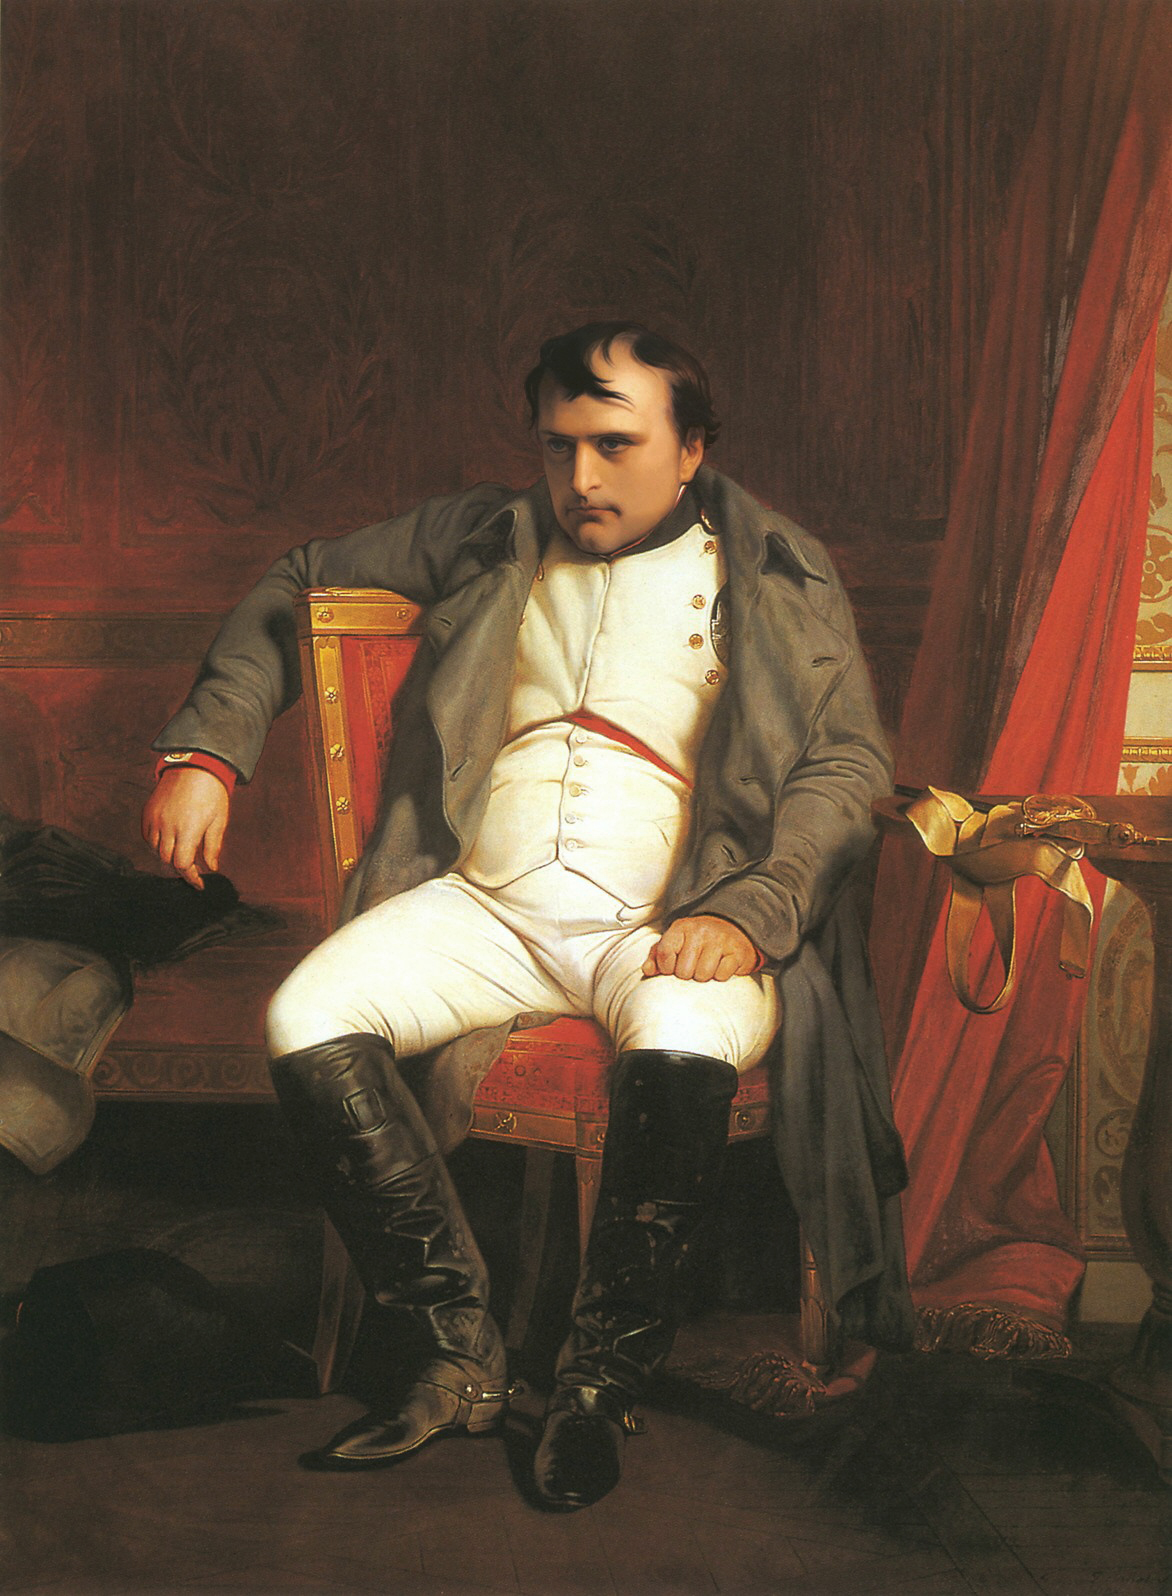 Paul Delaroche, Napoléon à Fontainebleau, 1840. With other global powers increasingly at odds with US foreign policy under Donald Trump, the nation's hegemony on the world stage may soon face its own crisis point. Photo: Wikimedia Commons